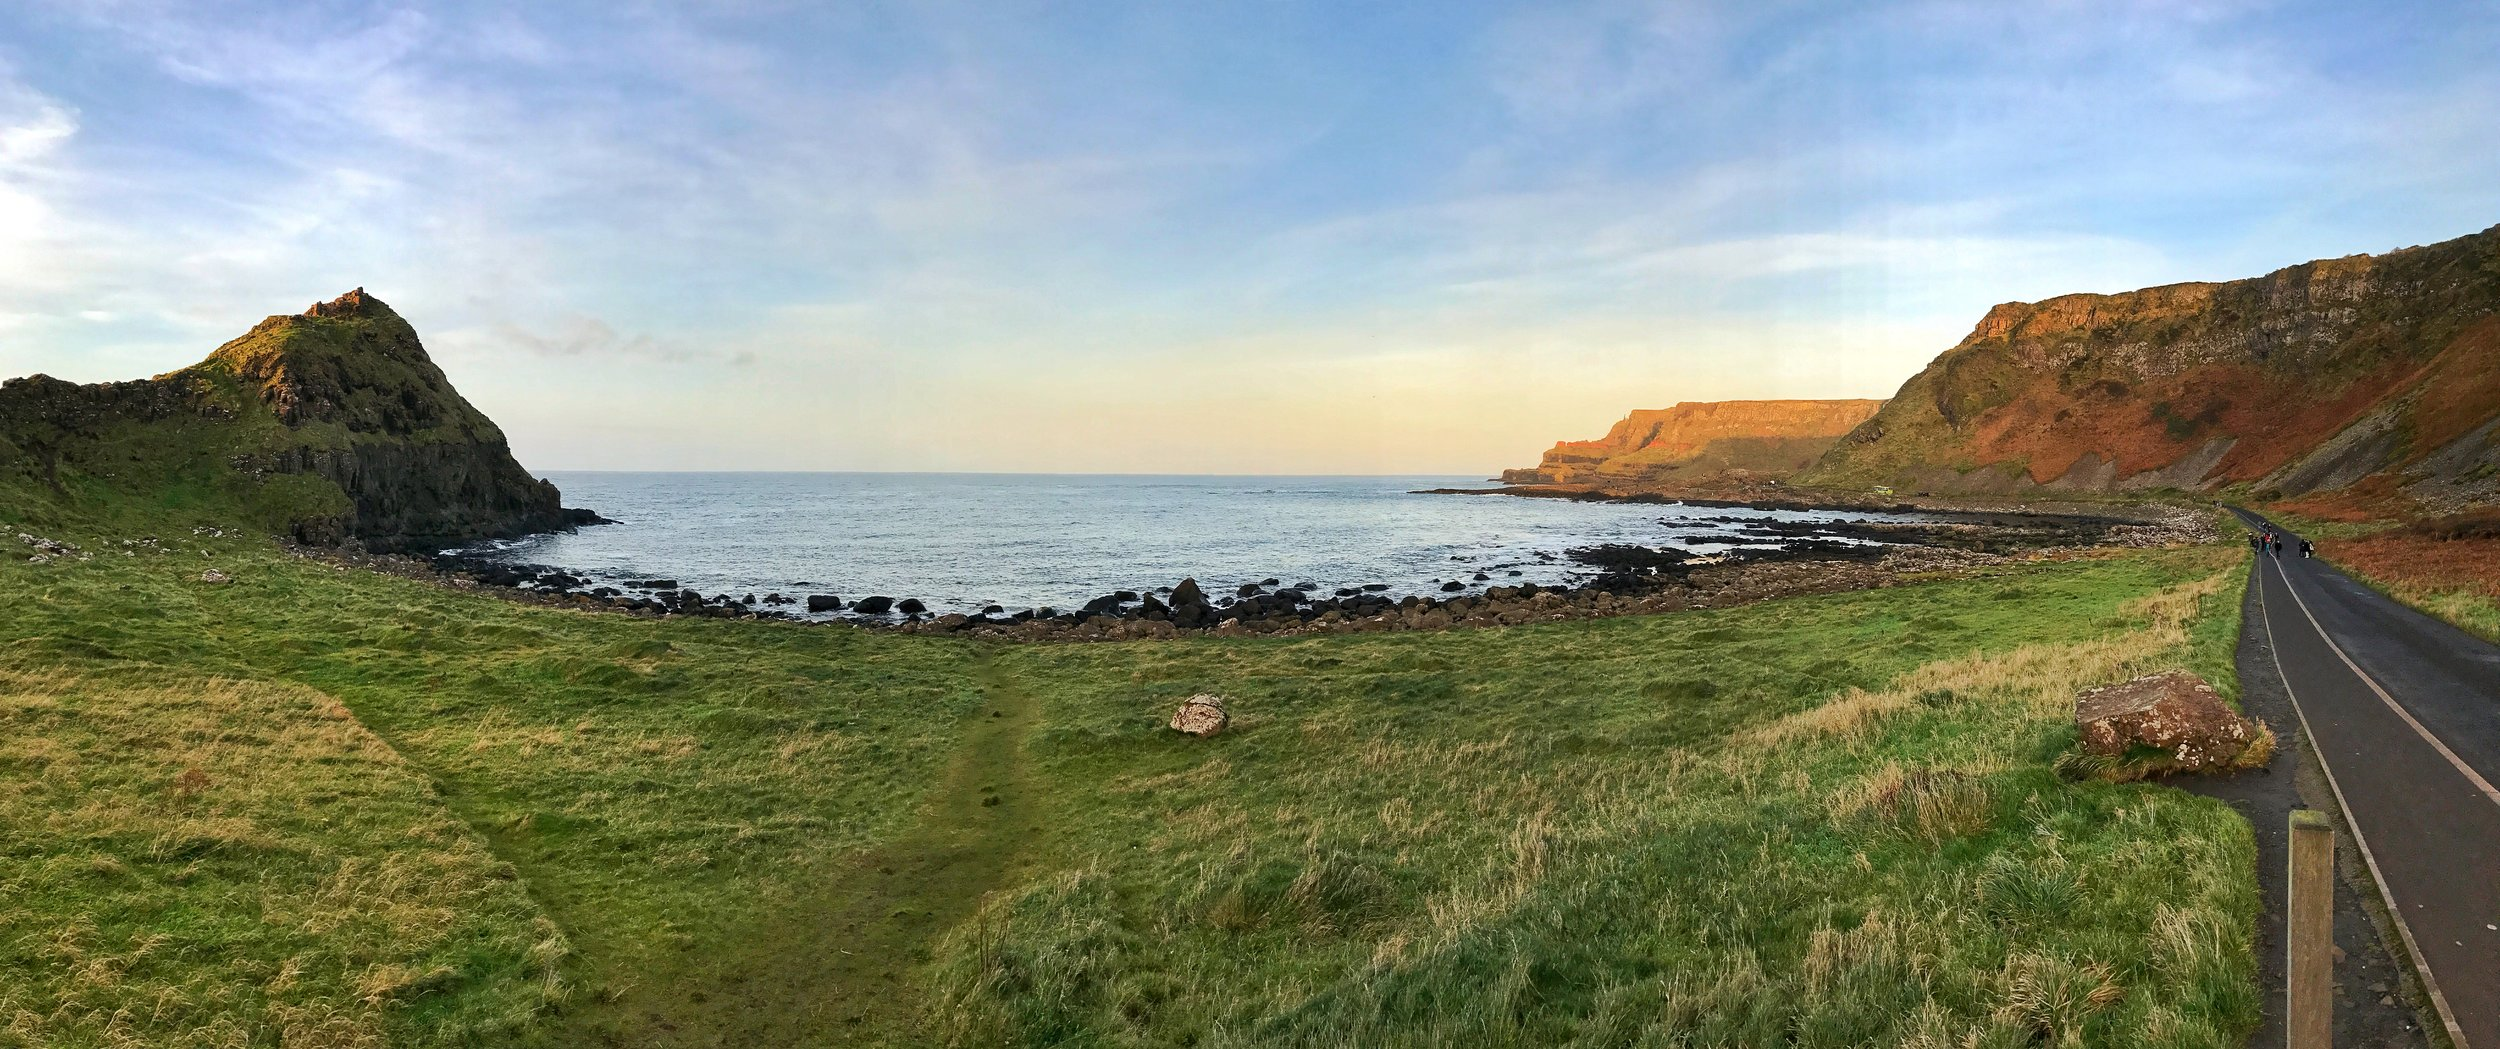 The Giant's Causeway is now part of the United Kingdom's National Trust, and has many walking trails in and around the Causeway.